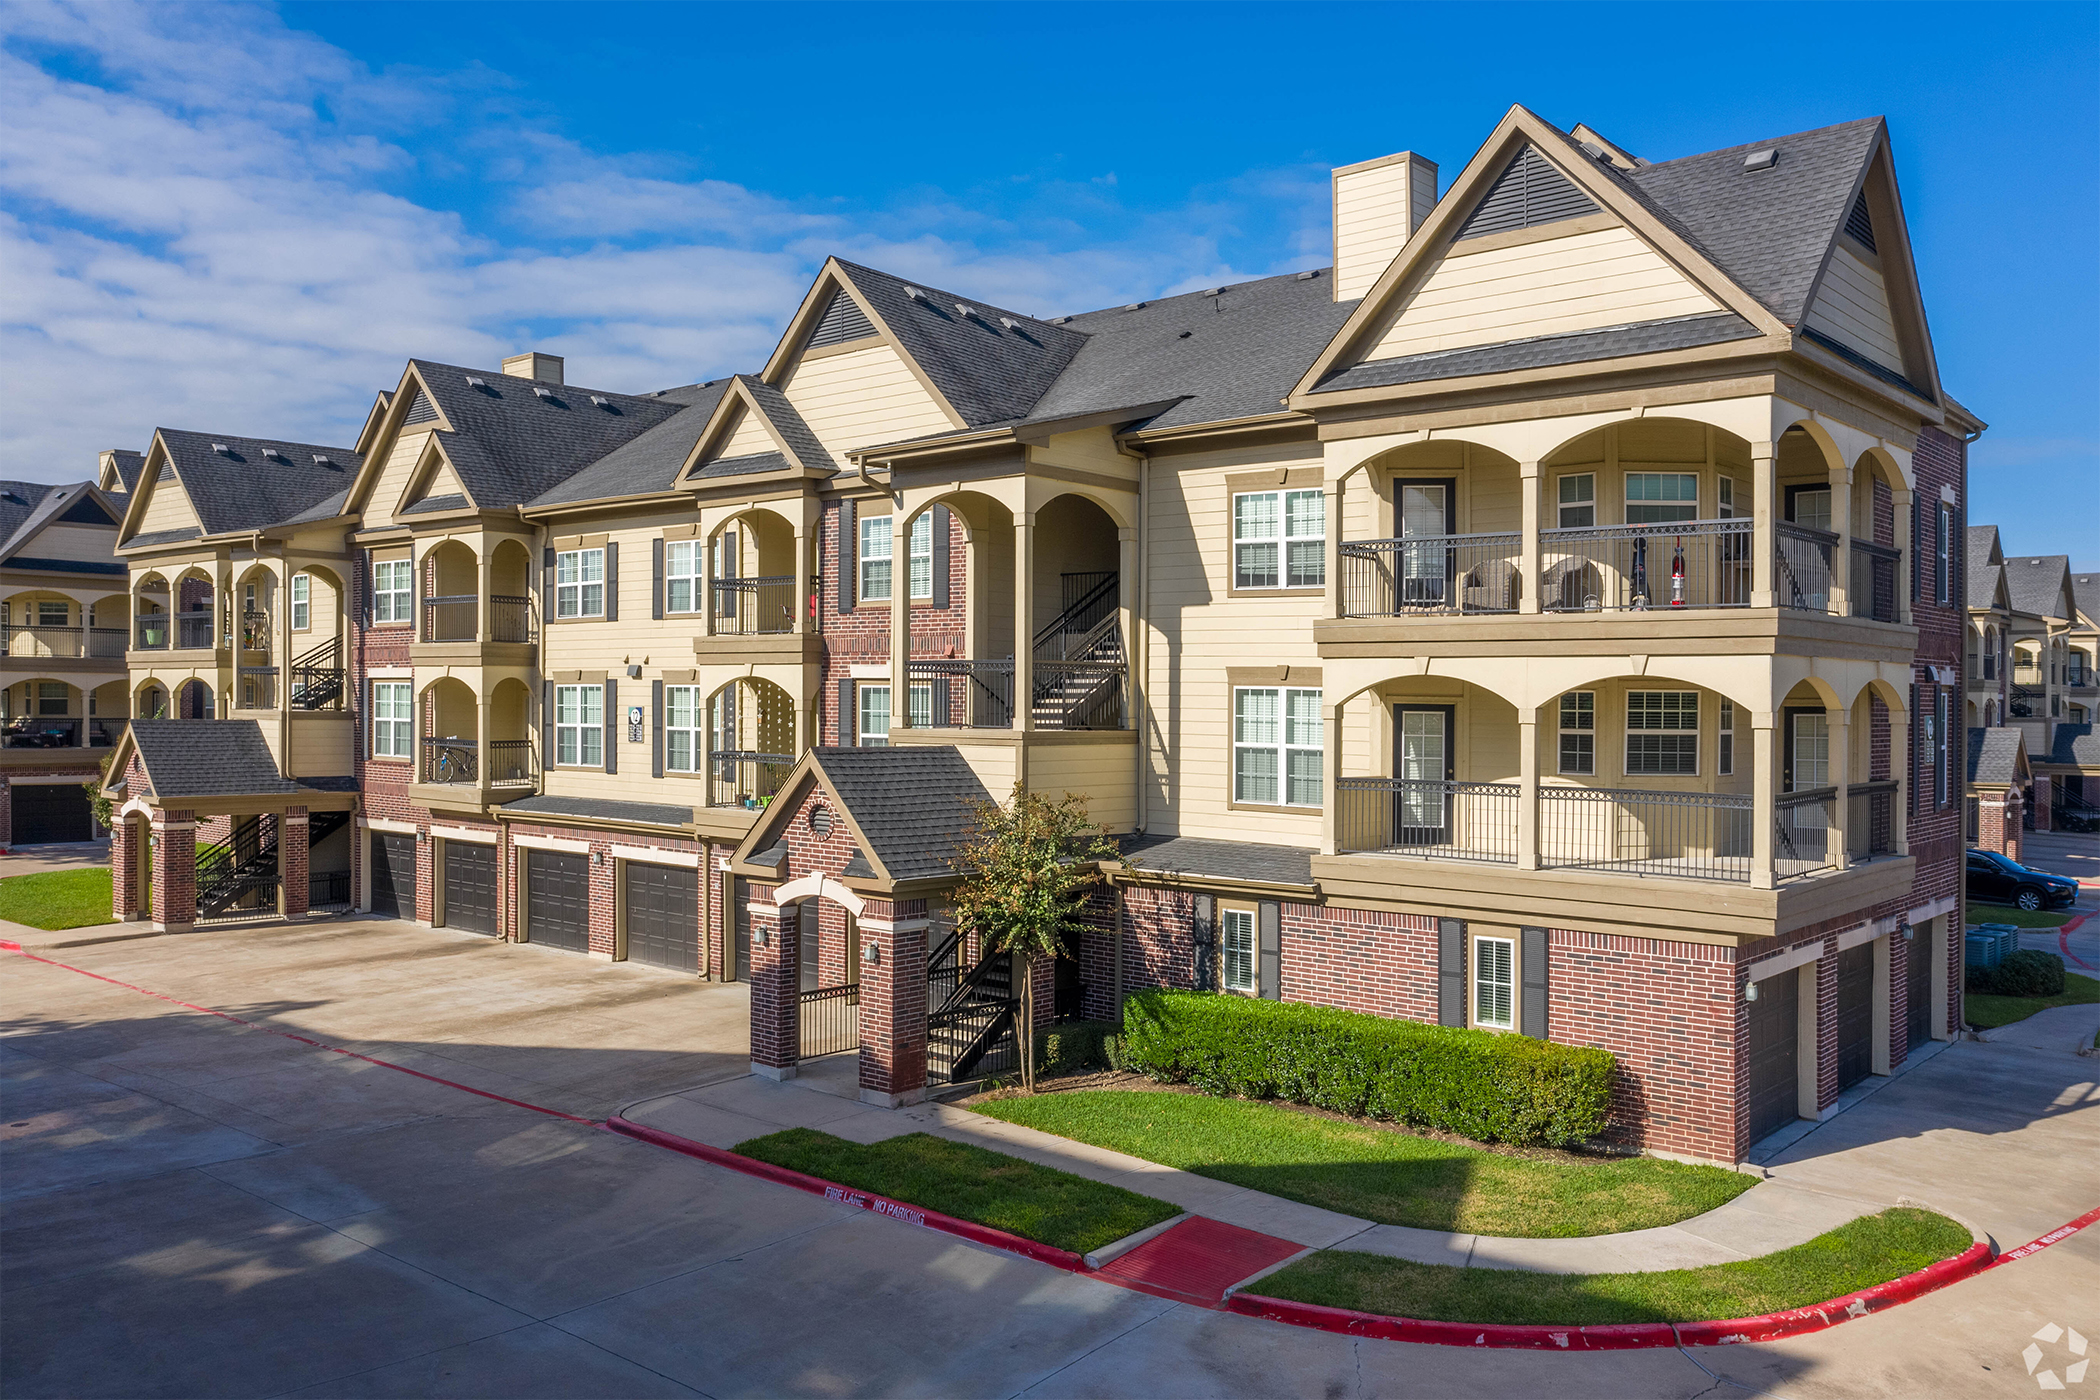 Camden is optimistic about overall apartment revenue bouncing back this year. Pictured is the Cypress Creek community in a Houston suburb. (CoStar)